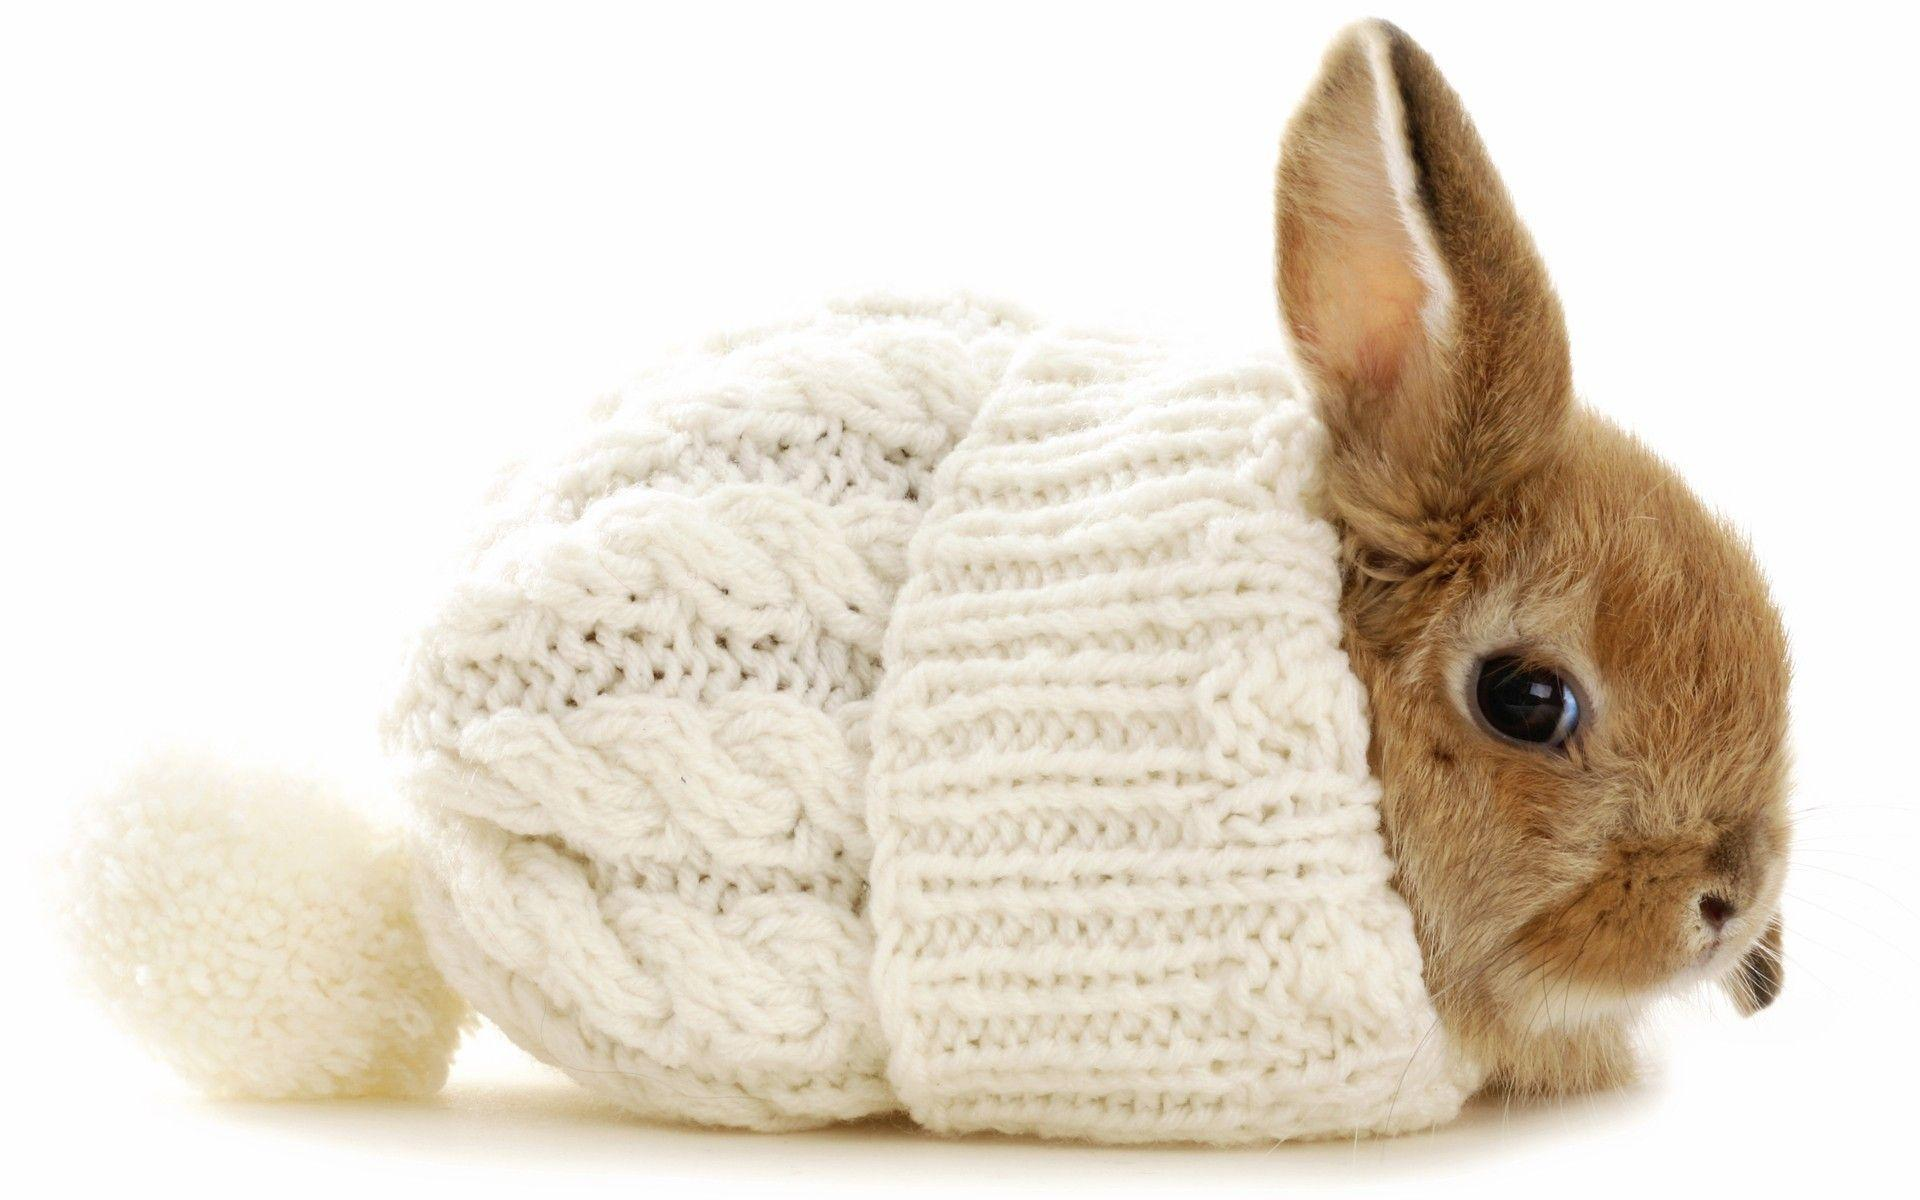 Wallpapers For Cute White Baby Rabbit Wallpaper